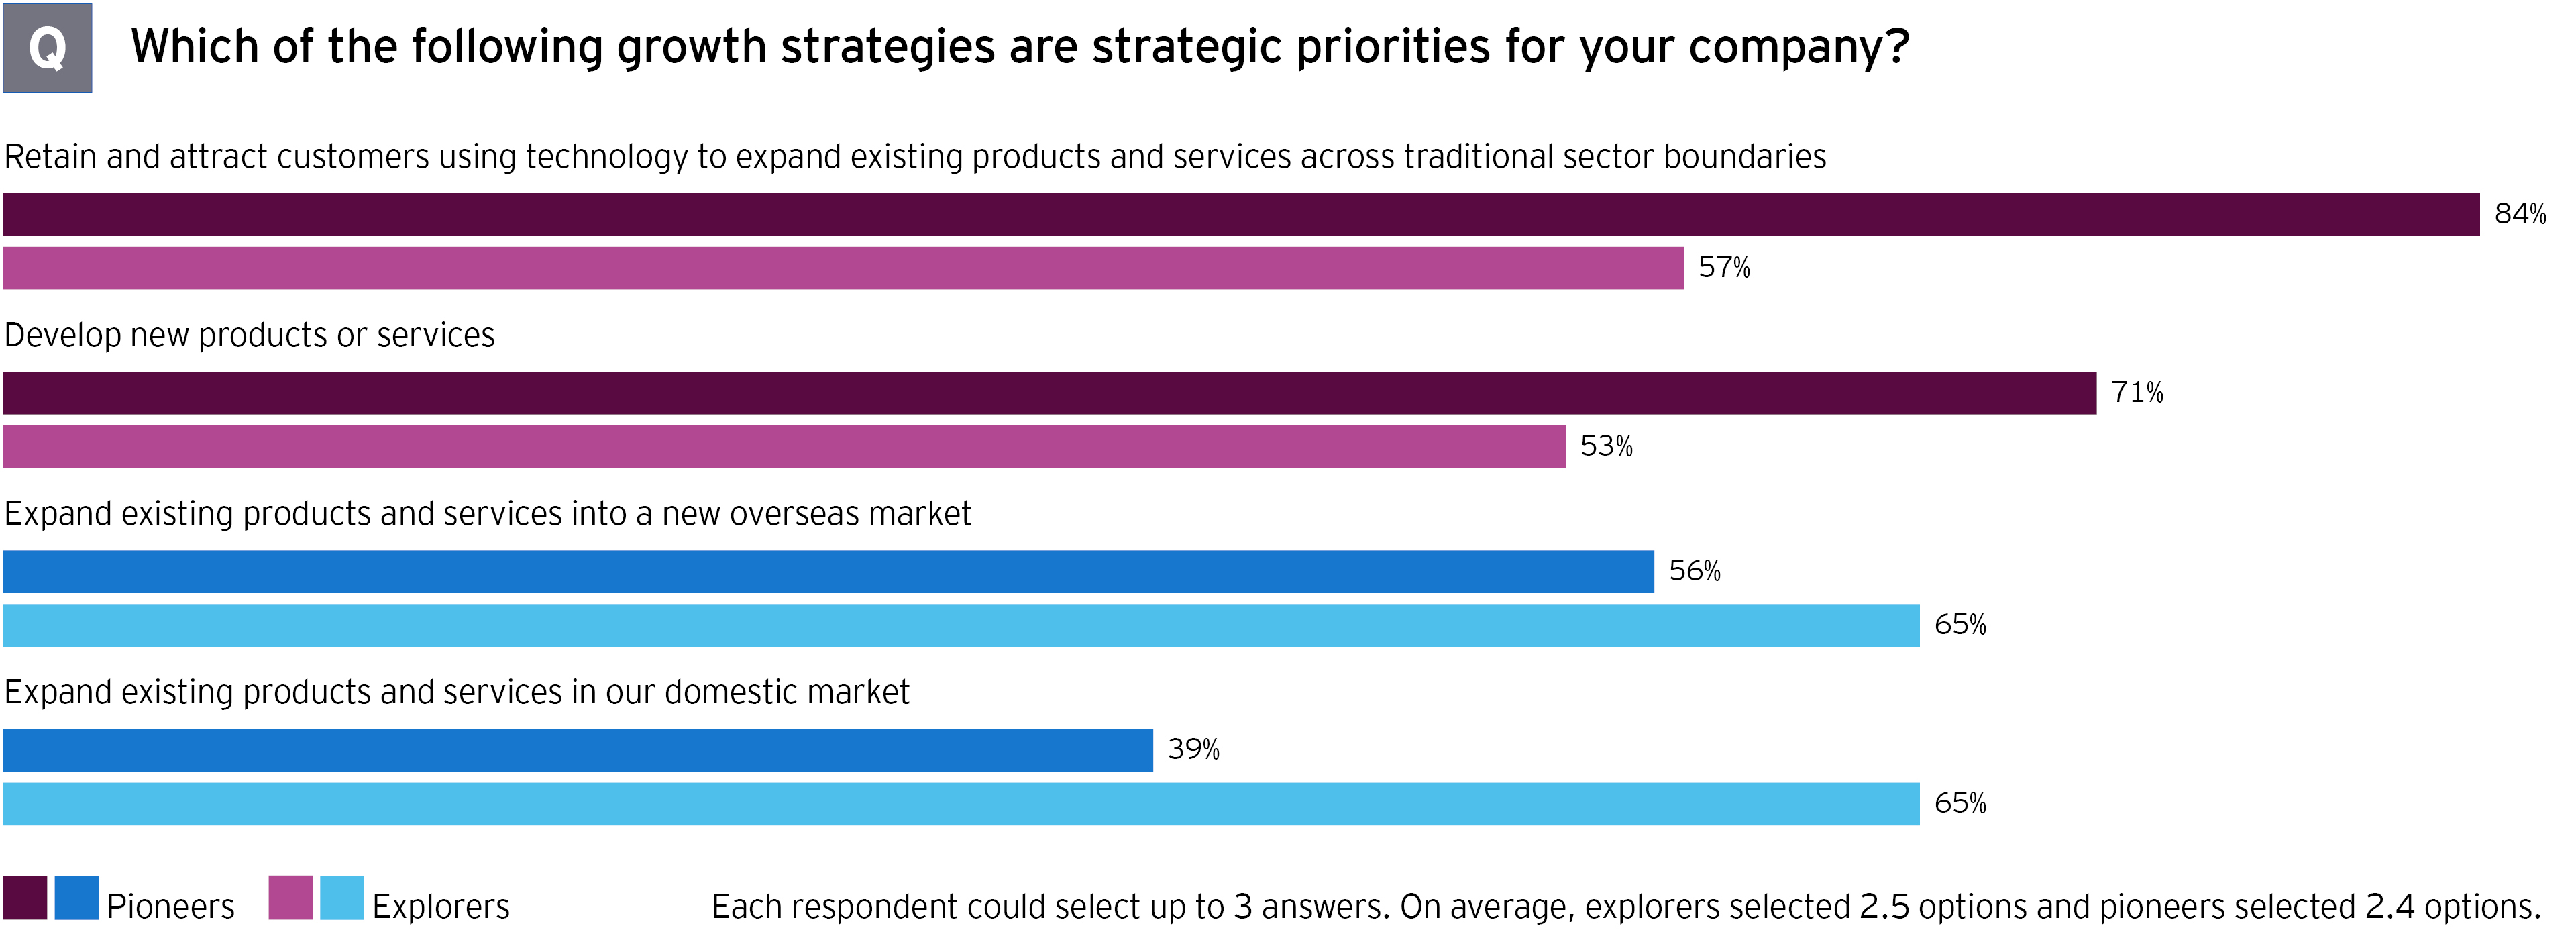 M&A survey which growth strategies strategic priority graph